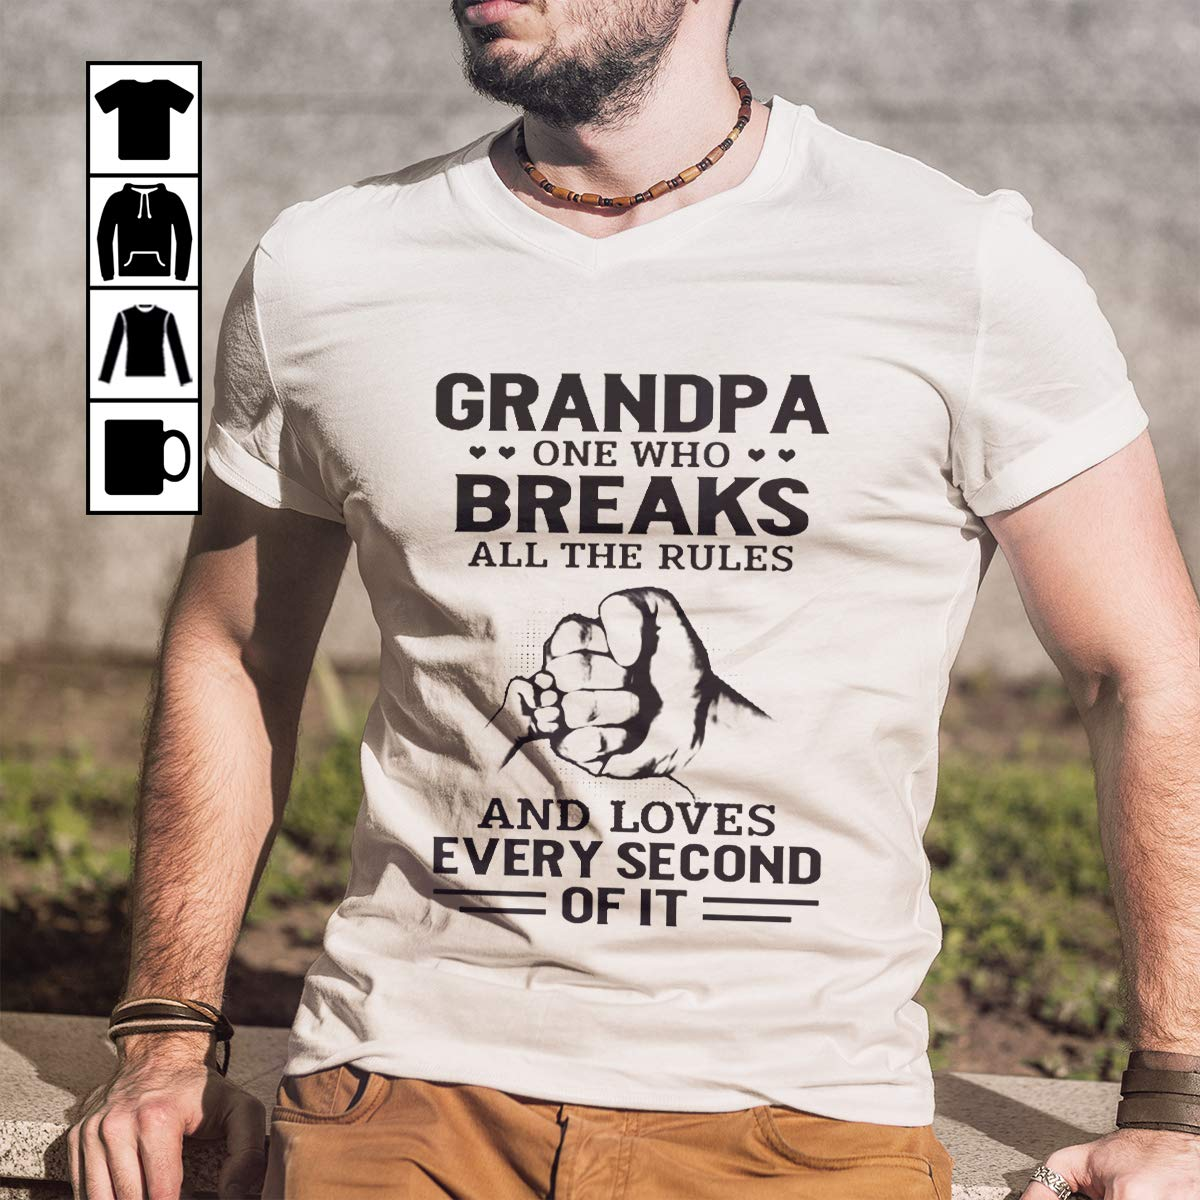 Grandpa One Who Breaks All The Rules And Loves Every Second Of It T Shirt Sweatshirt Long